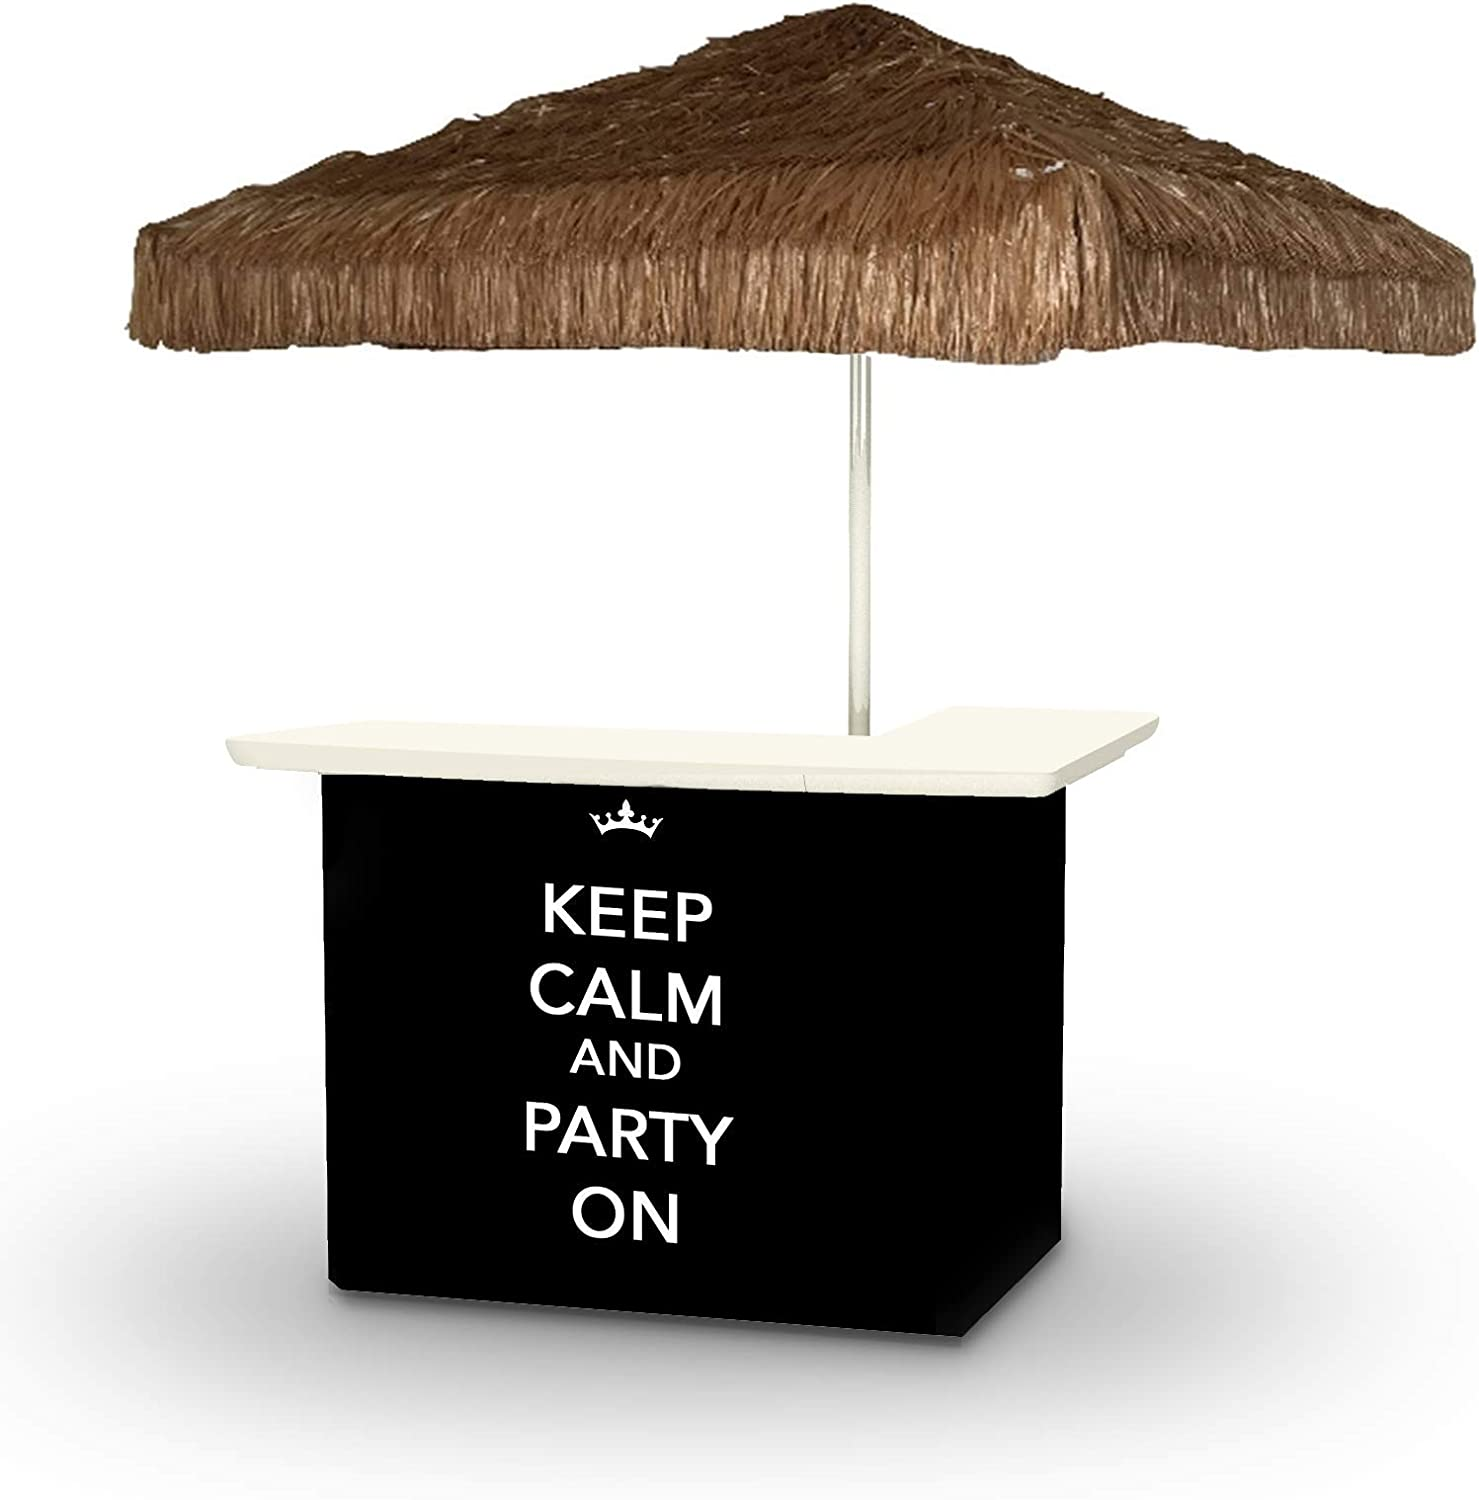 Best Denver Free shipping Mall of Times 2001W2505P Keep Calm Size One ON-PALAPA and Party